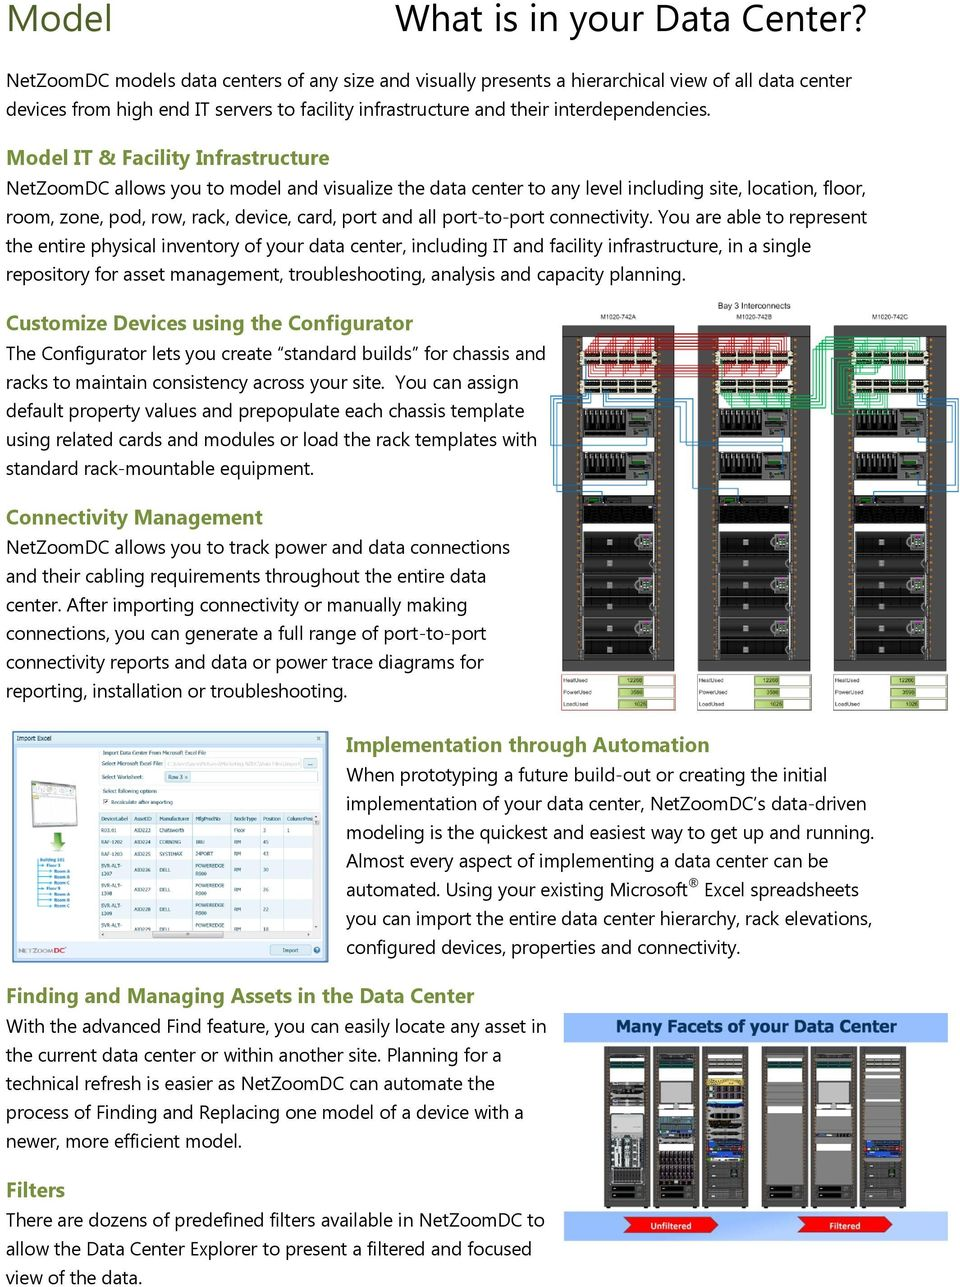 Model IT & Facility Infrastructure NetZoomDC allows you to model and visualize the data center to any level including site, location, floor, room, zone, pod, row, rack, device, card, port and all